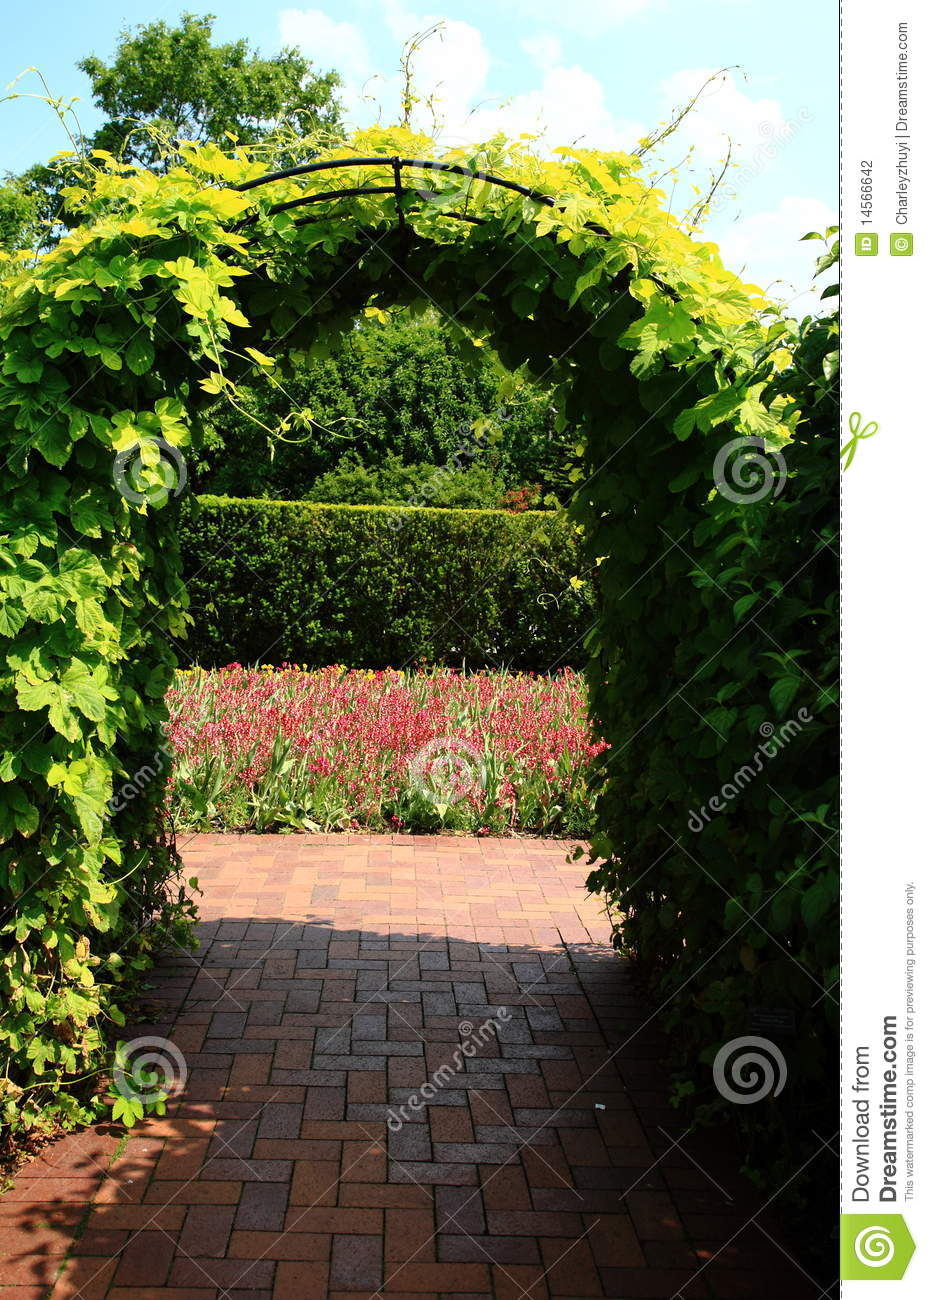 Vines on archway trellis stock photo Image of ve ation